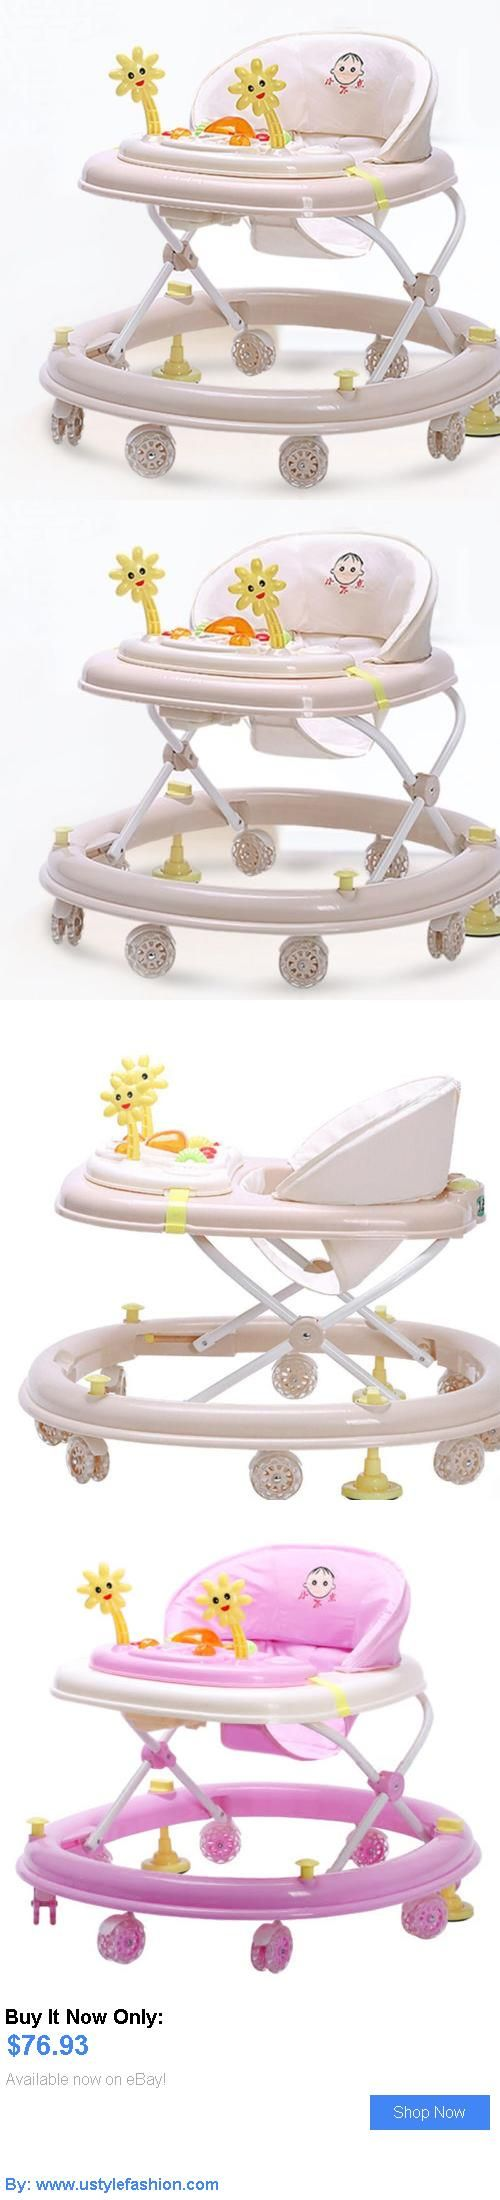 Baby walkers: Stylish Baby Walker Toddler Walk Learning Tools Adjustable Height Safety Walker BUY IT NOW ONLY: $76.93 #ustylefashionBabywalkers OR #ustylefashion